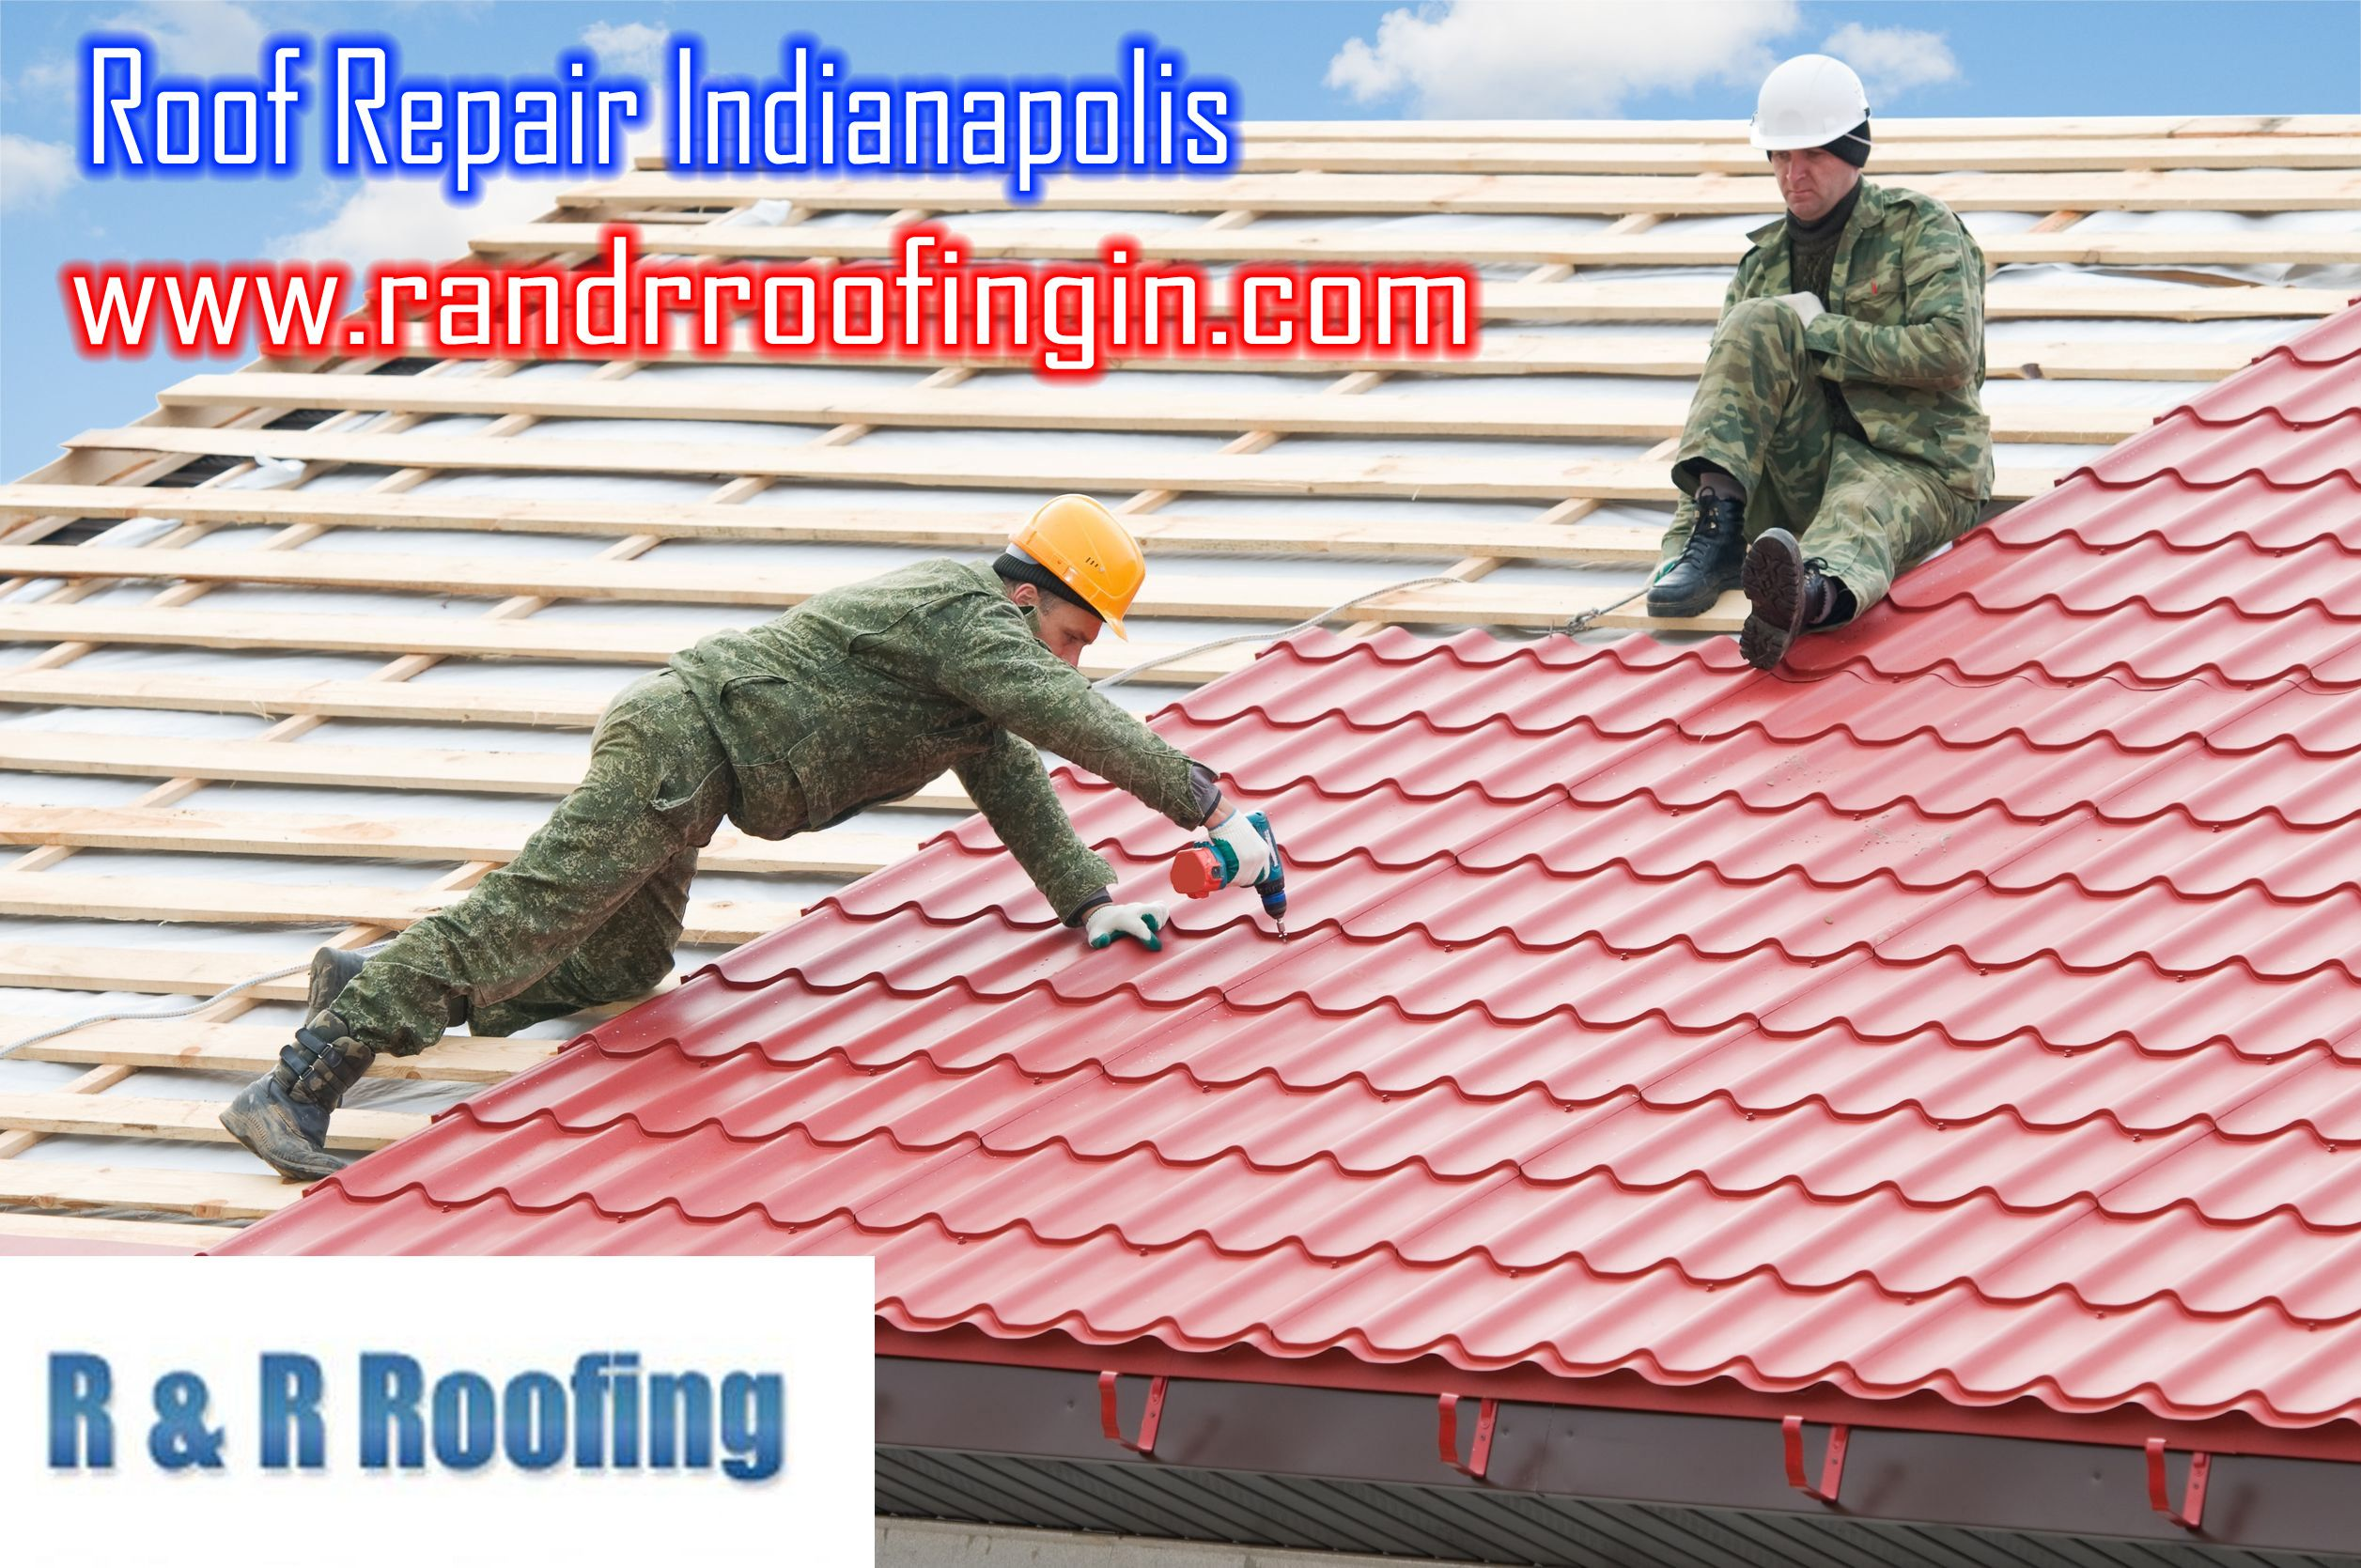 Pin By Steev Cooper On Experienced Roofer Indianapolis Gutter Repair Workers Commercial Roofer Roof Restoration Roof Repair Roof Installation